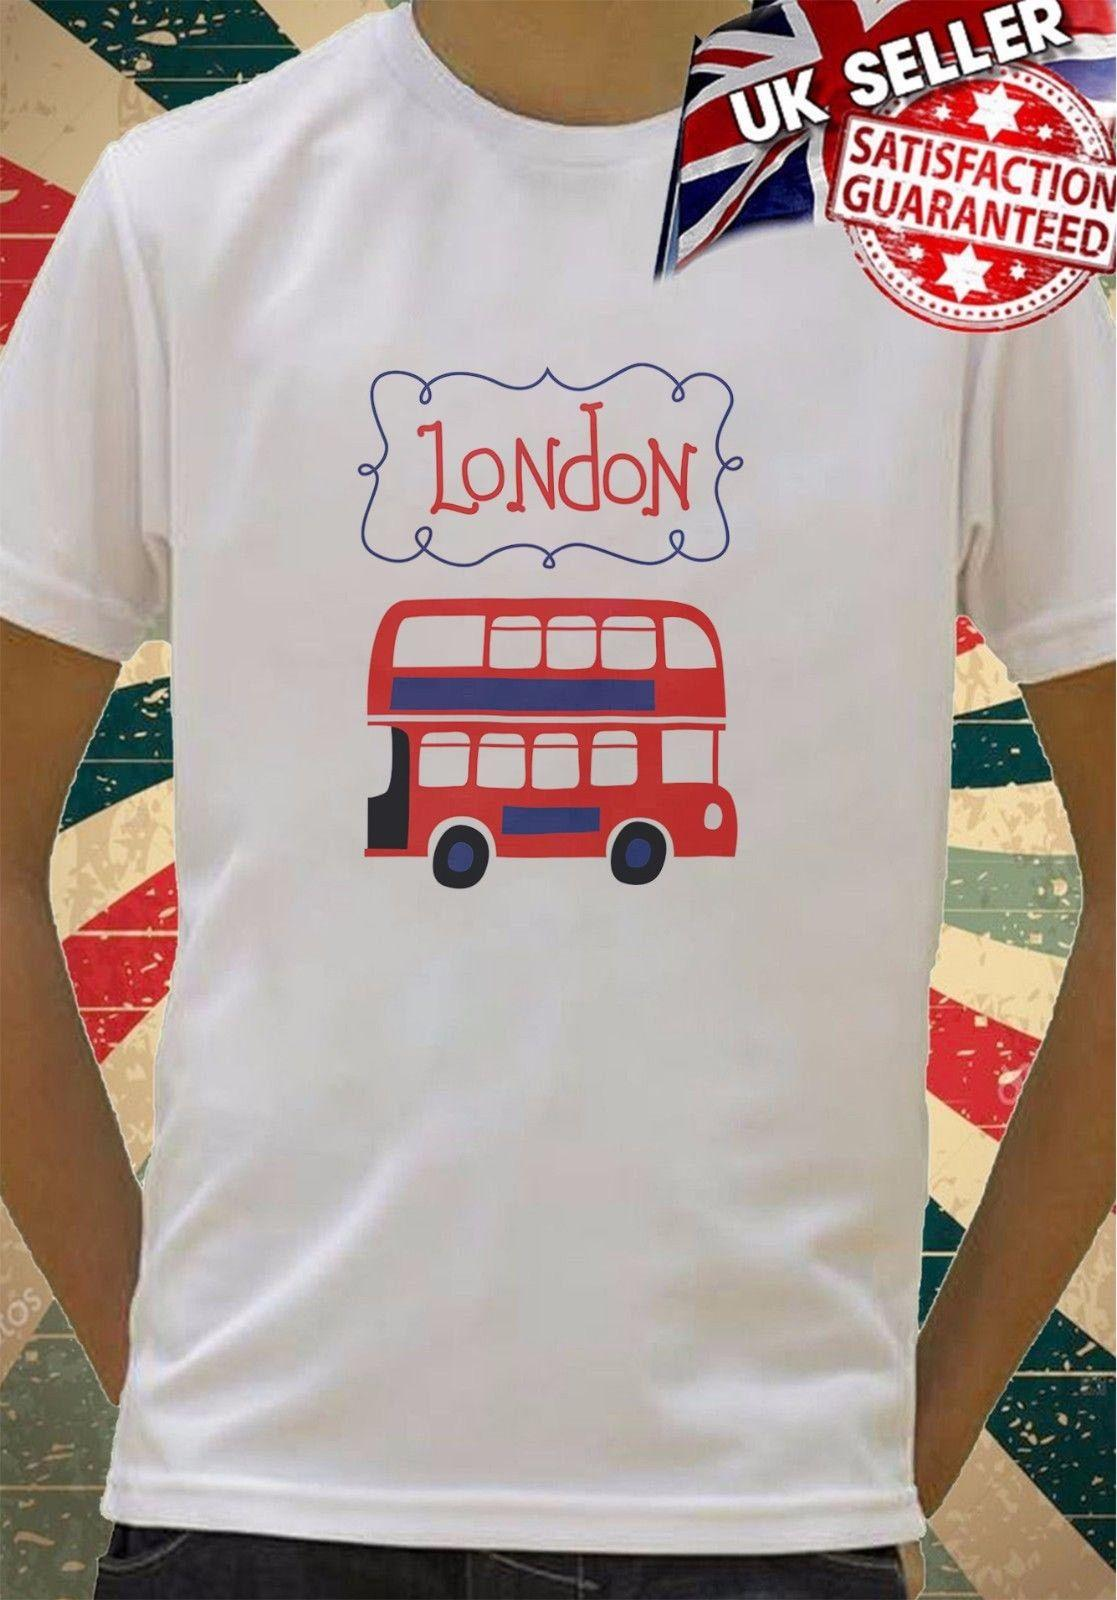 Red London Bus Boys Girls Birthday Gift Top T Shirt 189Funny Casual Tee Pt Shirts Tourist From Fatcuckoo 1296